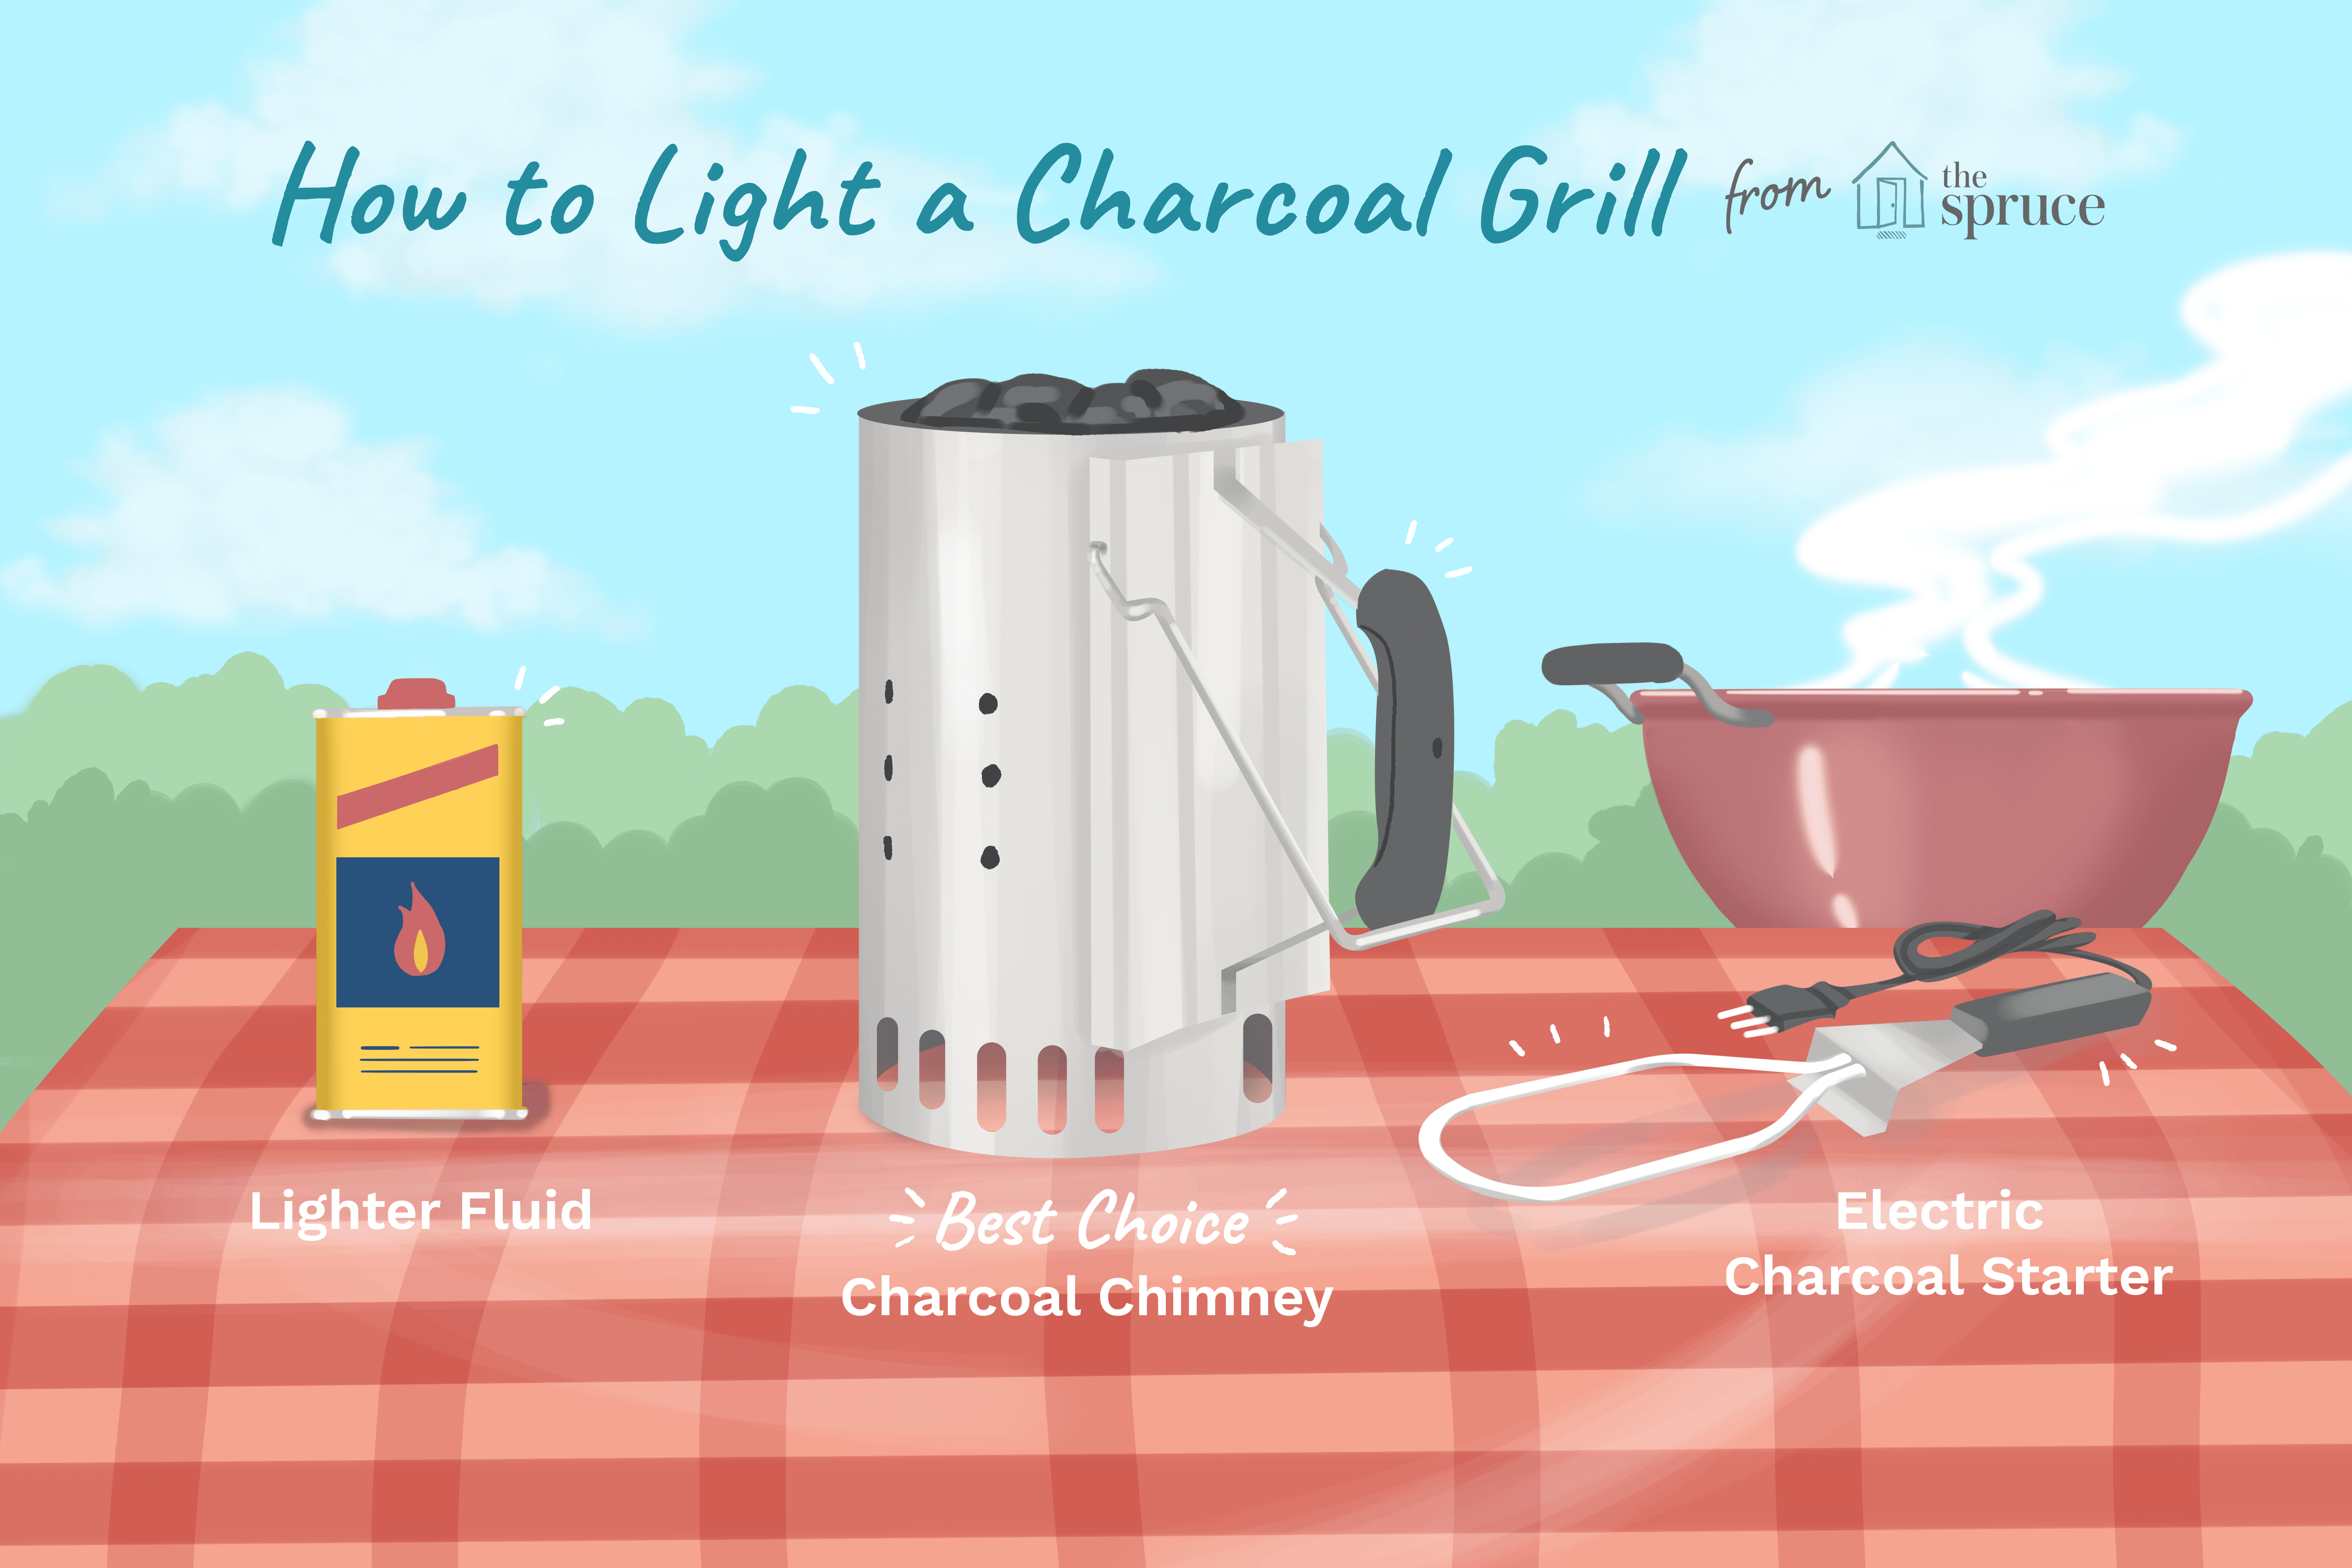 how to light a charcoal grill illustration